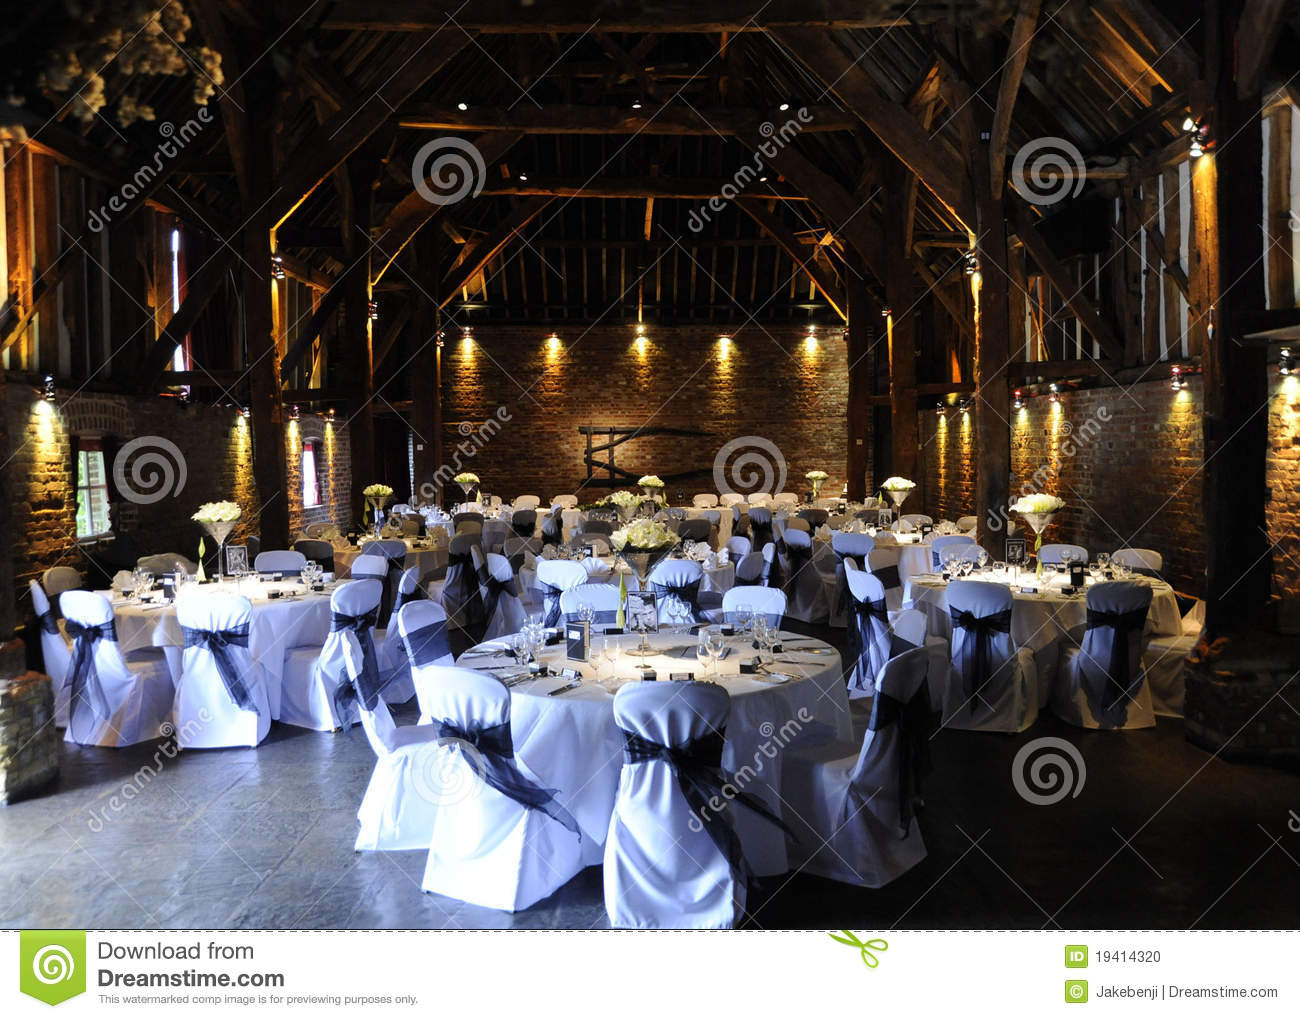 Indoor Wedding Venue Royalty Free Stock Photo: Laid Tables At Wedding Reception Stock Photo